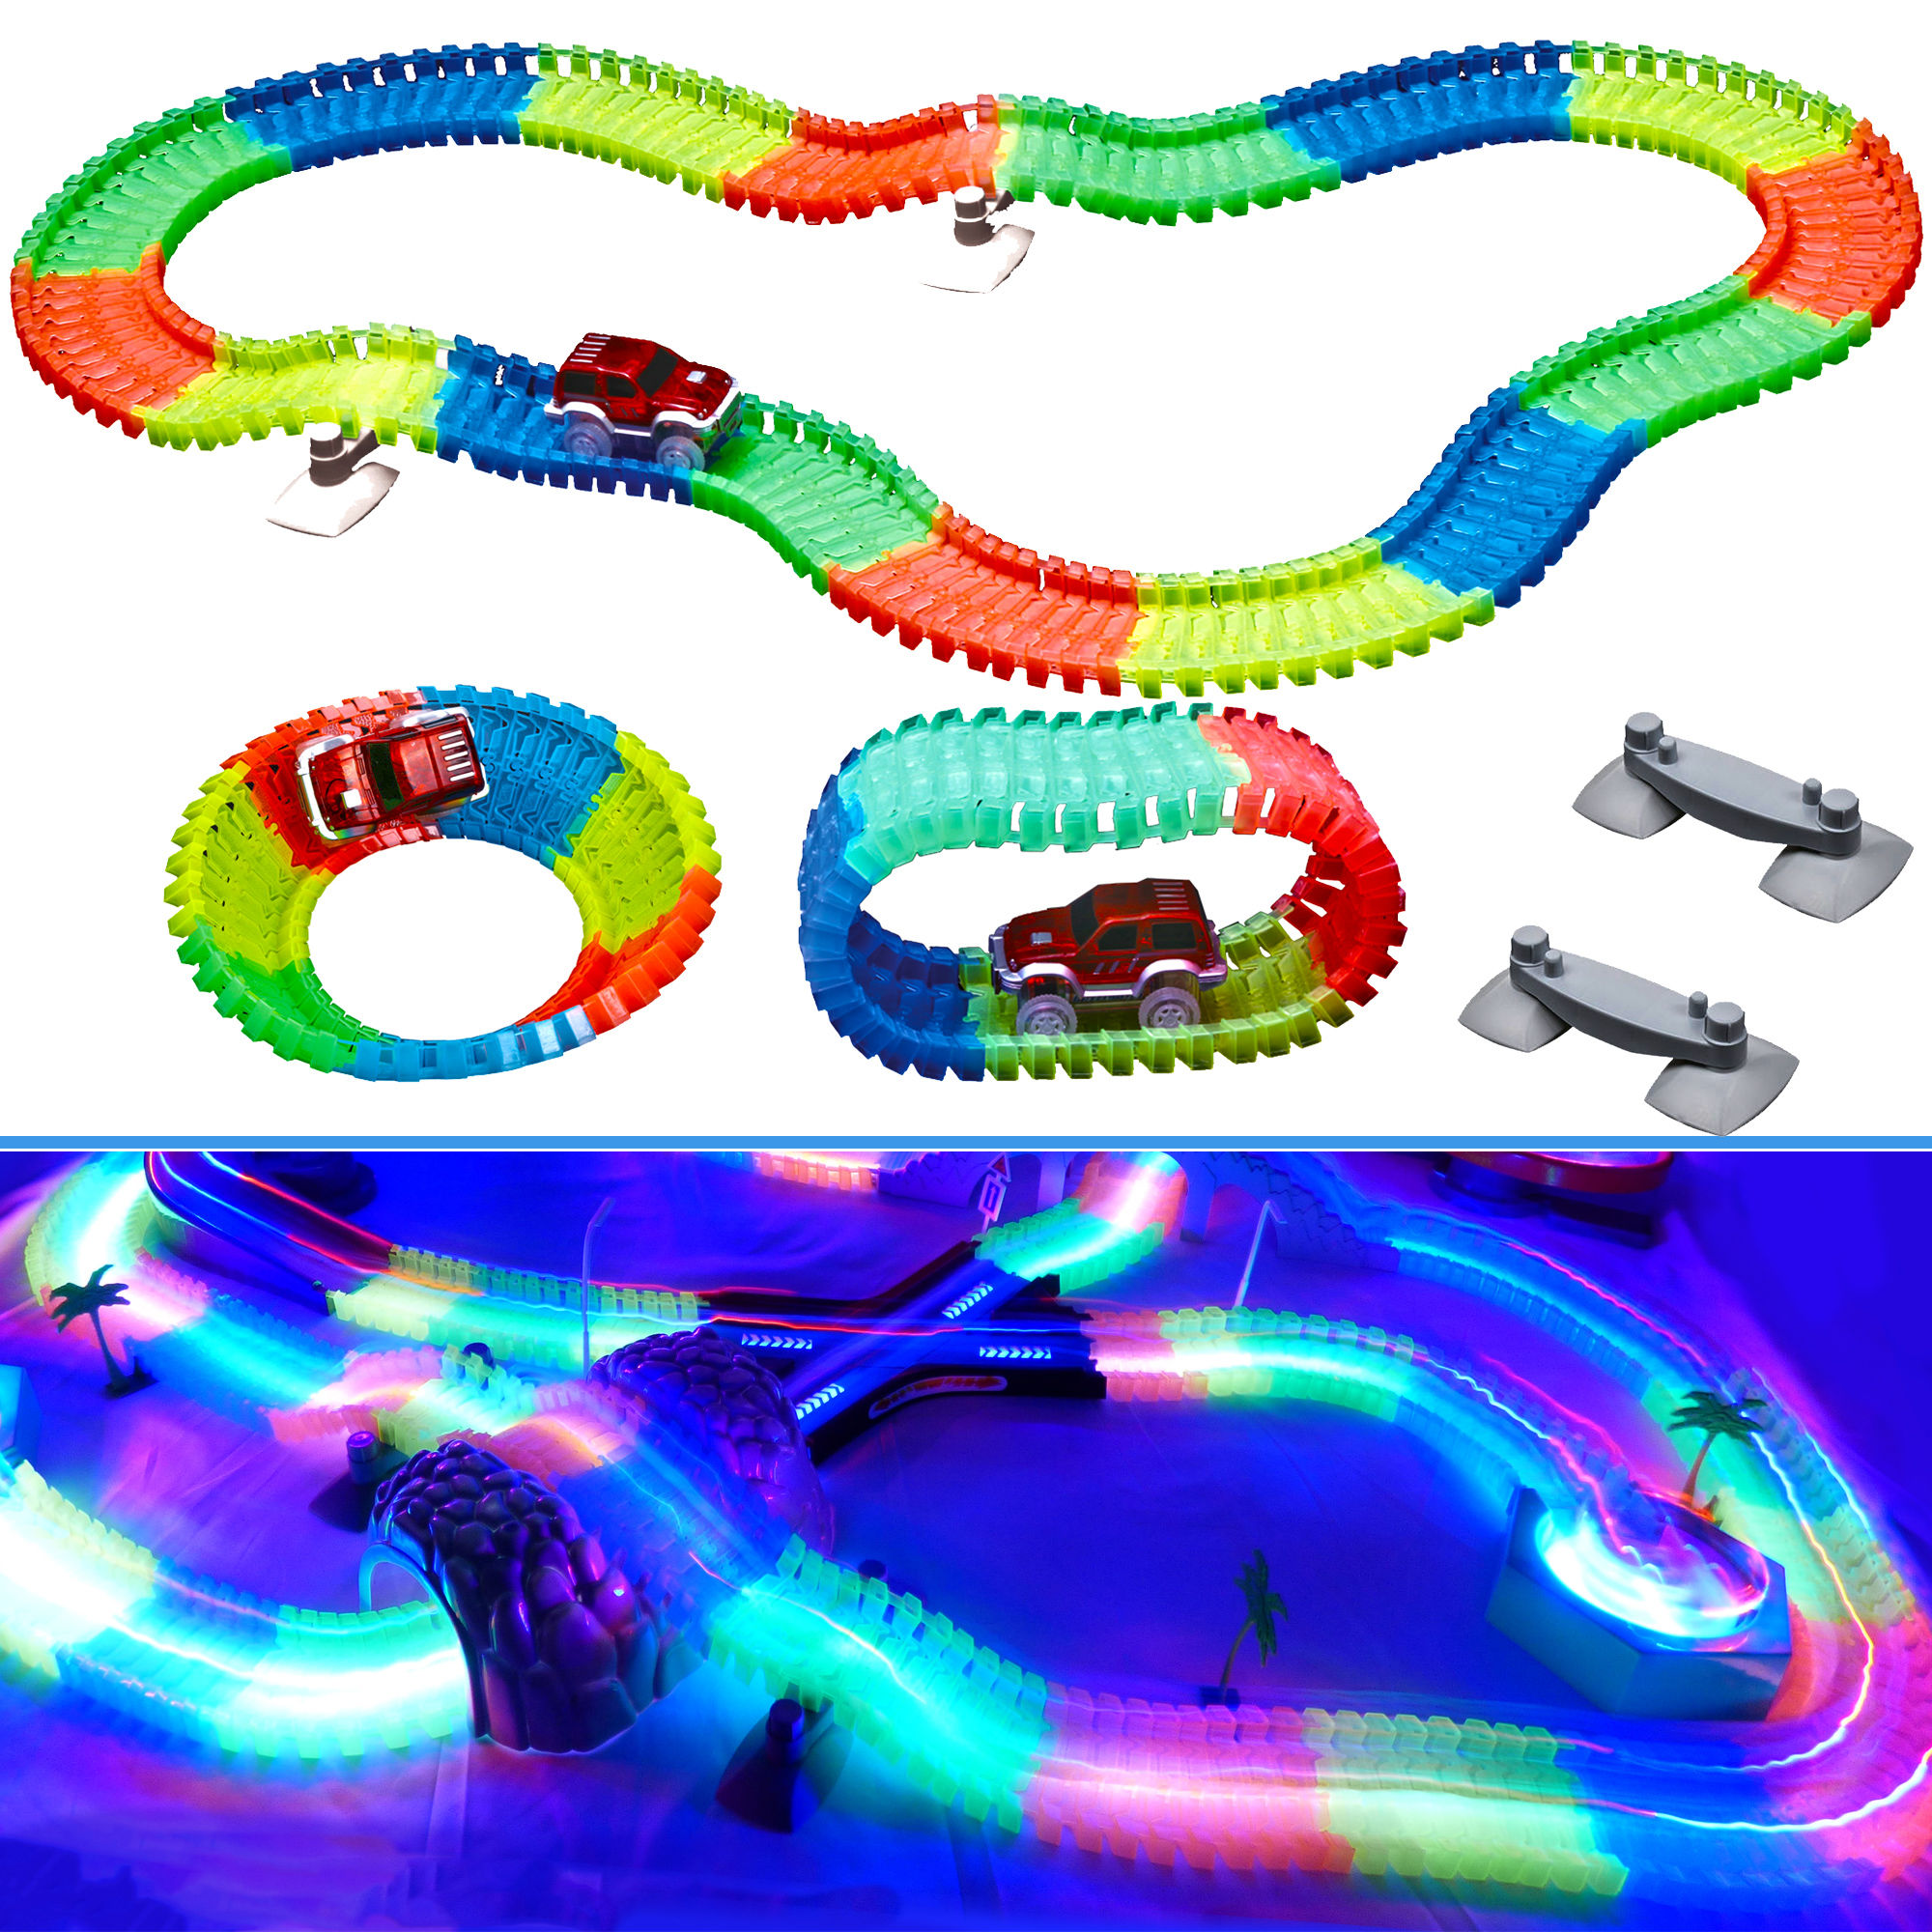 Light Up Twisting Glow In The Dark Race Tracks - Magic Twister Race Track Toy Cars - Endless Glowing Track Possibilities